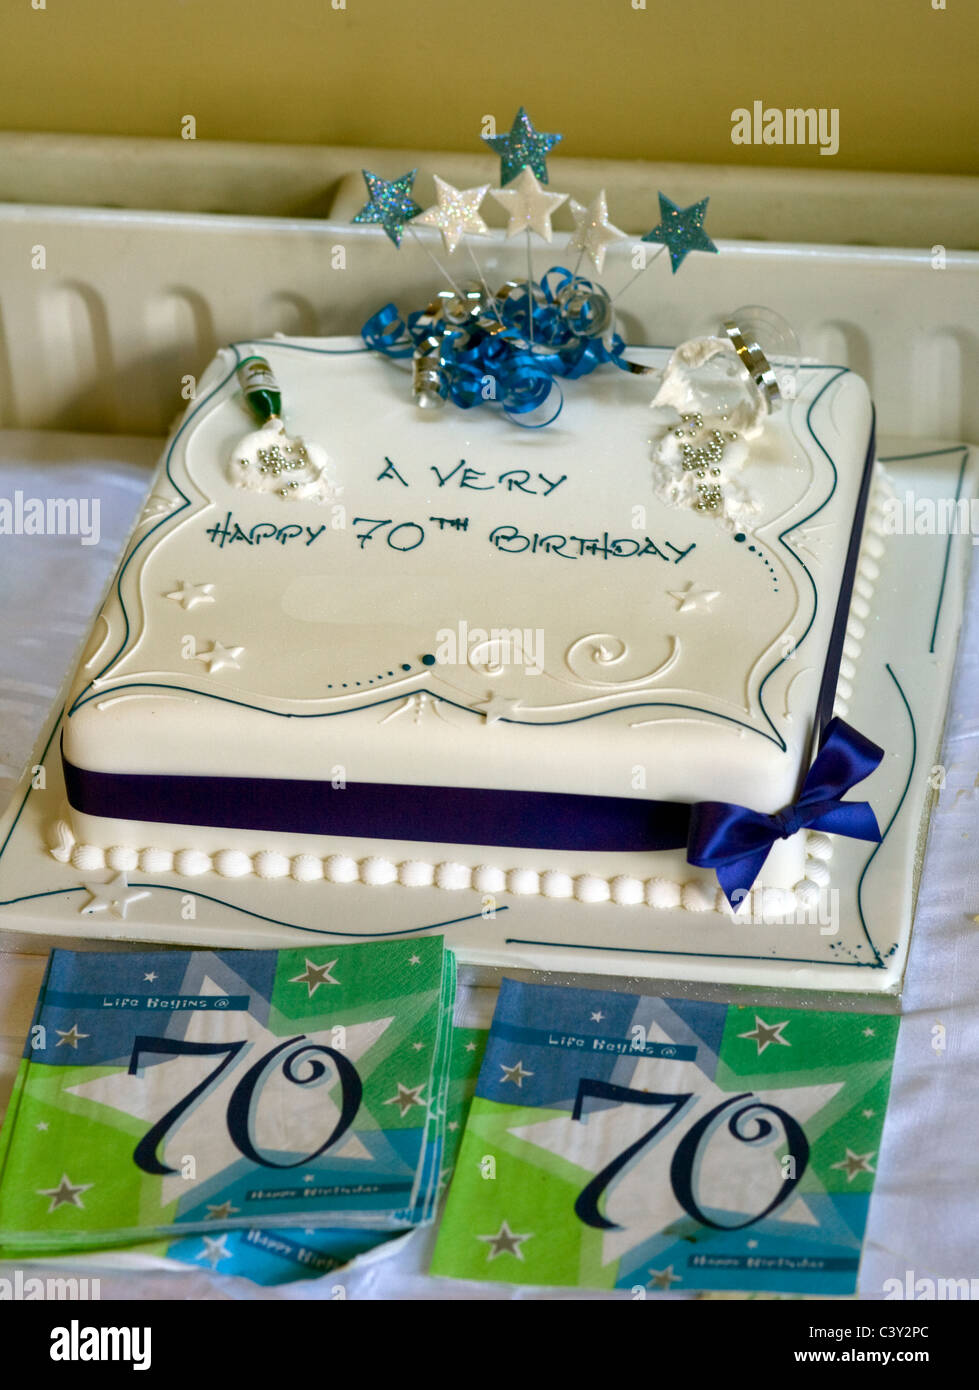 Birthday Cake With White Icing And Ribbon For 70th